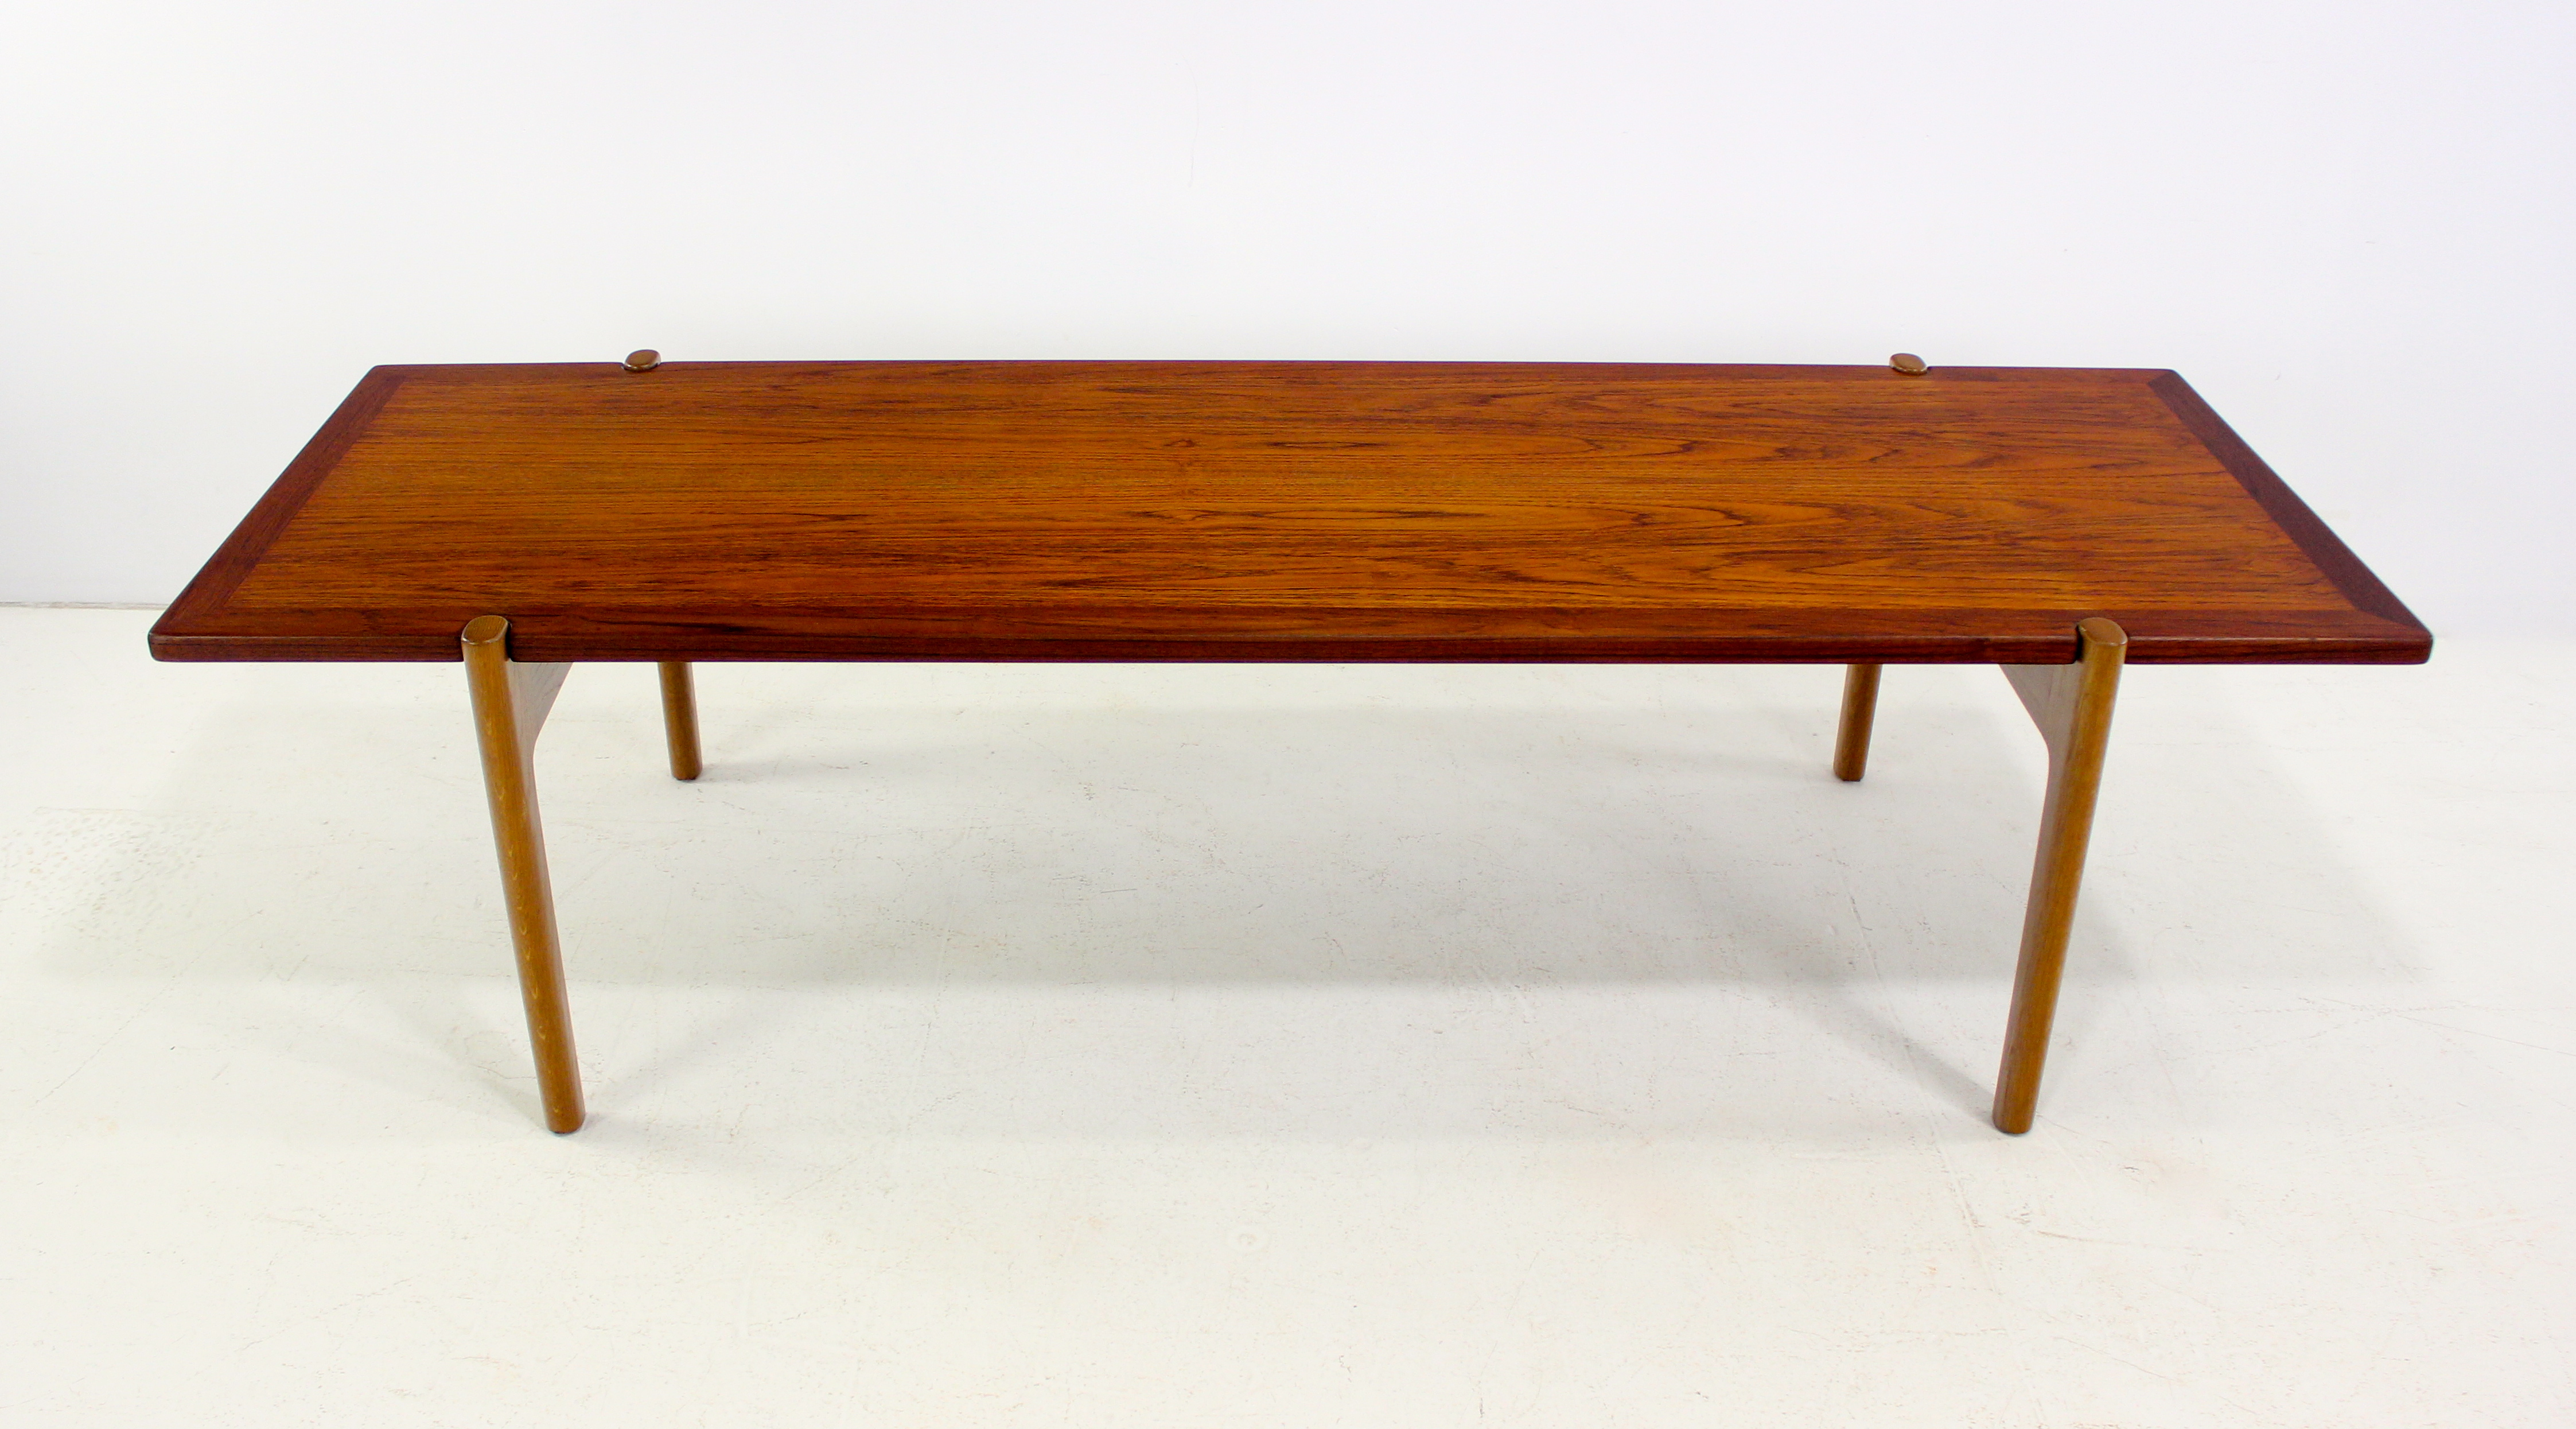 Danish Modern Teak and Oak Reversible Coffee Table Designed by